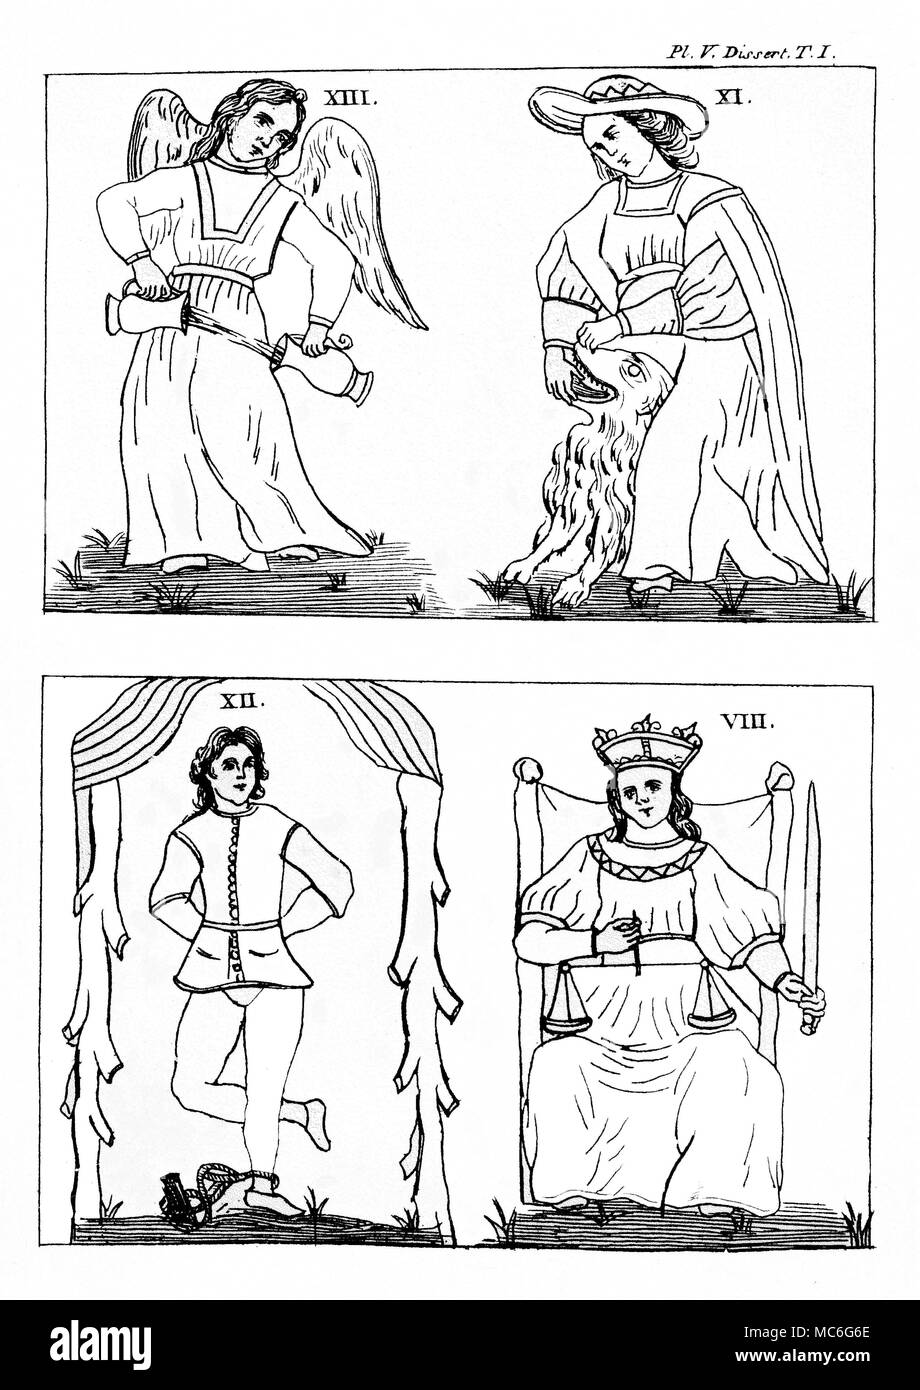 TAROT CARDS - GEBELIN DESIGN - TEMPERANCE - STRENGTH -  HANGING MAN - JUSTICE [Top left] Temperance, offered as a misprint as card 13 of the set pictured by the French Mason, Court de Gebelin, in 1773, based on the Marseille decks he had seen. The card should properly be number 14 in the series, for the  13th card is that given over to Death.  See Court de Gebelin, Le Monde primitive, Vols. III [1773] and VIII [1781].  [Top right]  Strength, card 11 of the Gebelin design.   [Bottom left]  The Hanging Man, card 12 of the Gebelin design, which (we observe that the Man is portrayed with his foot  - Stock Image